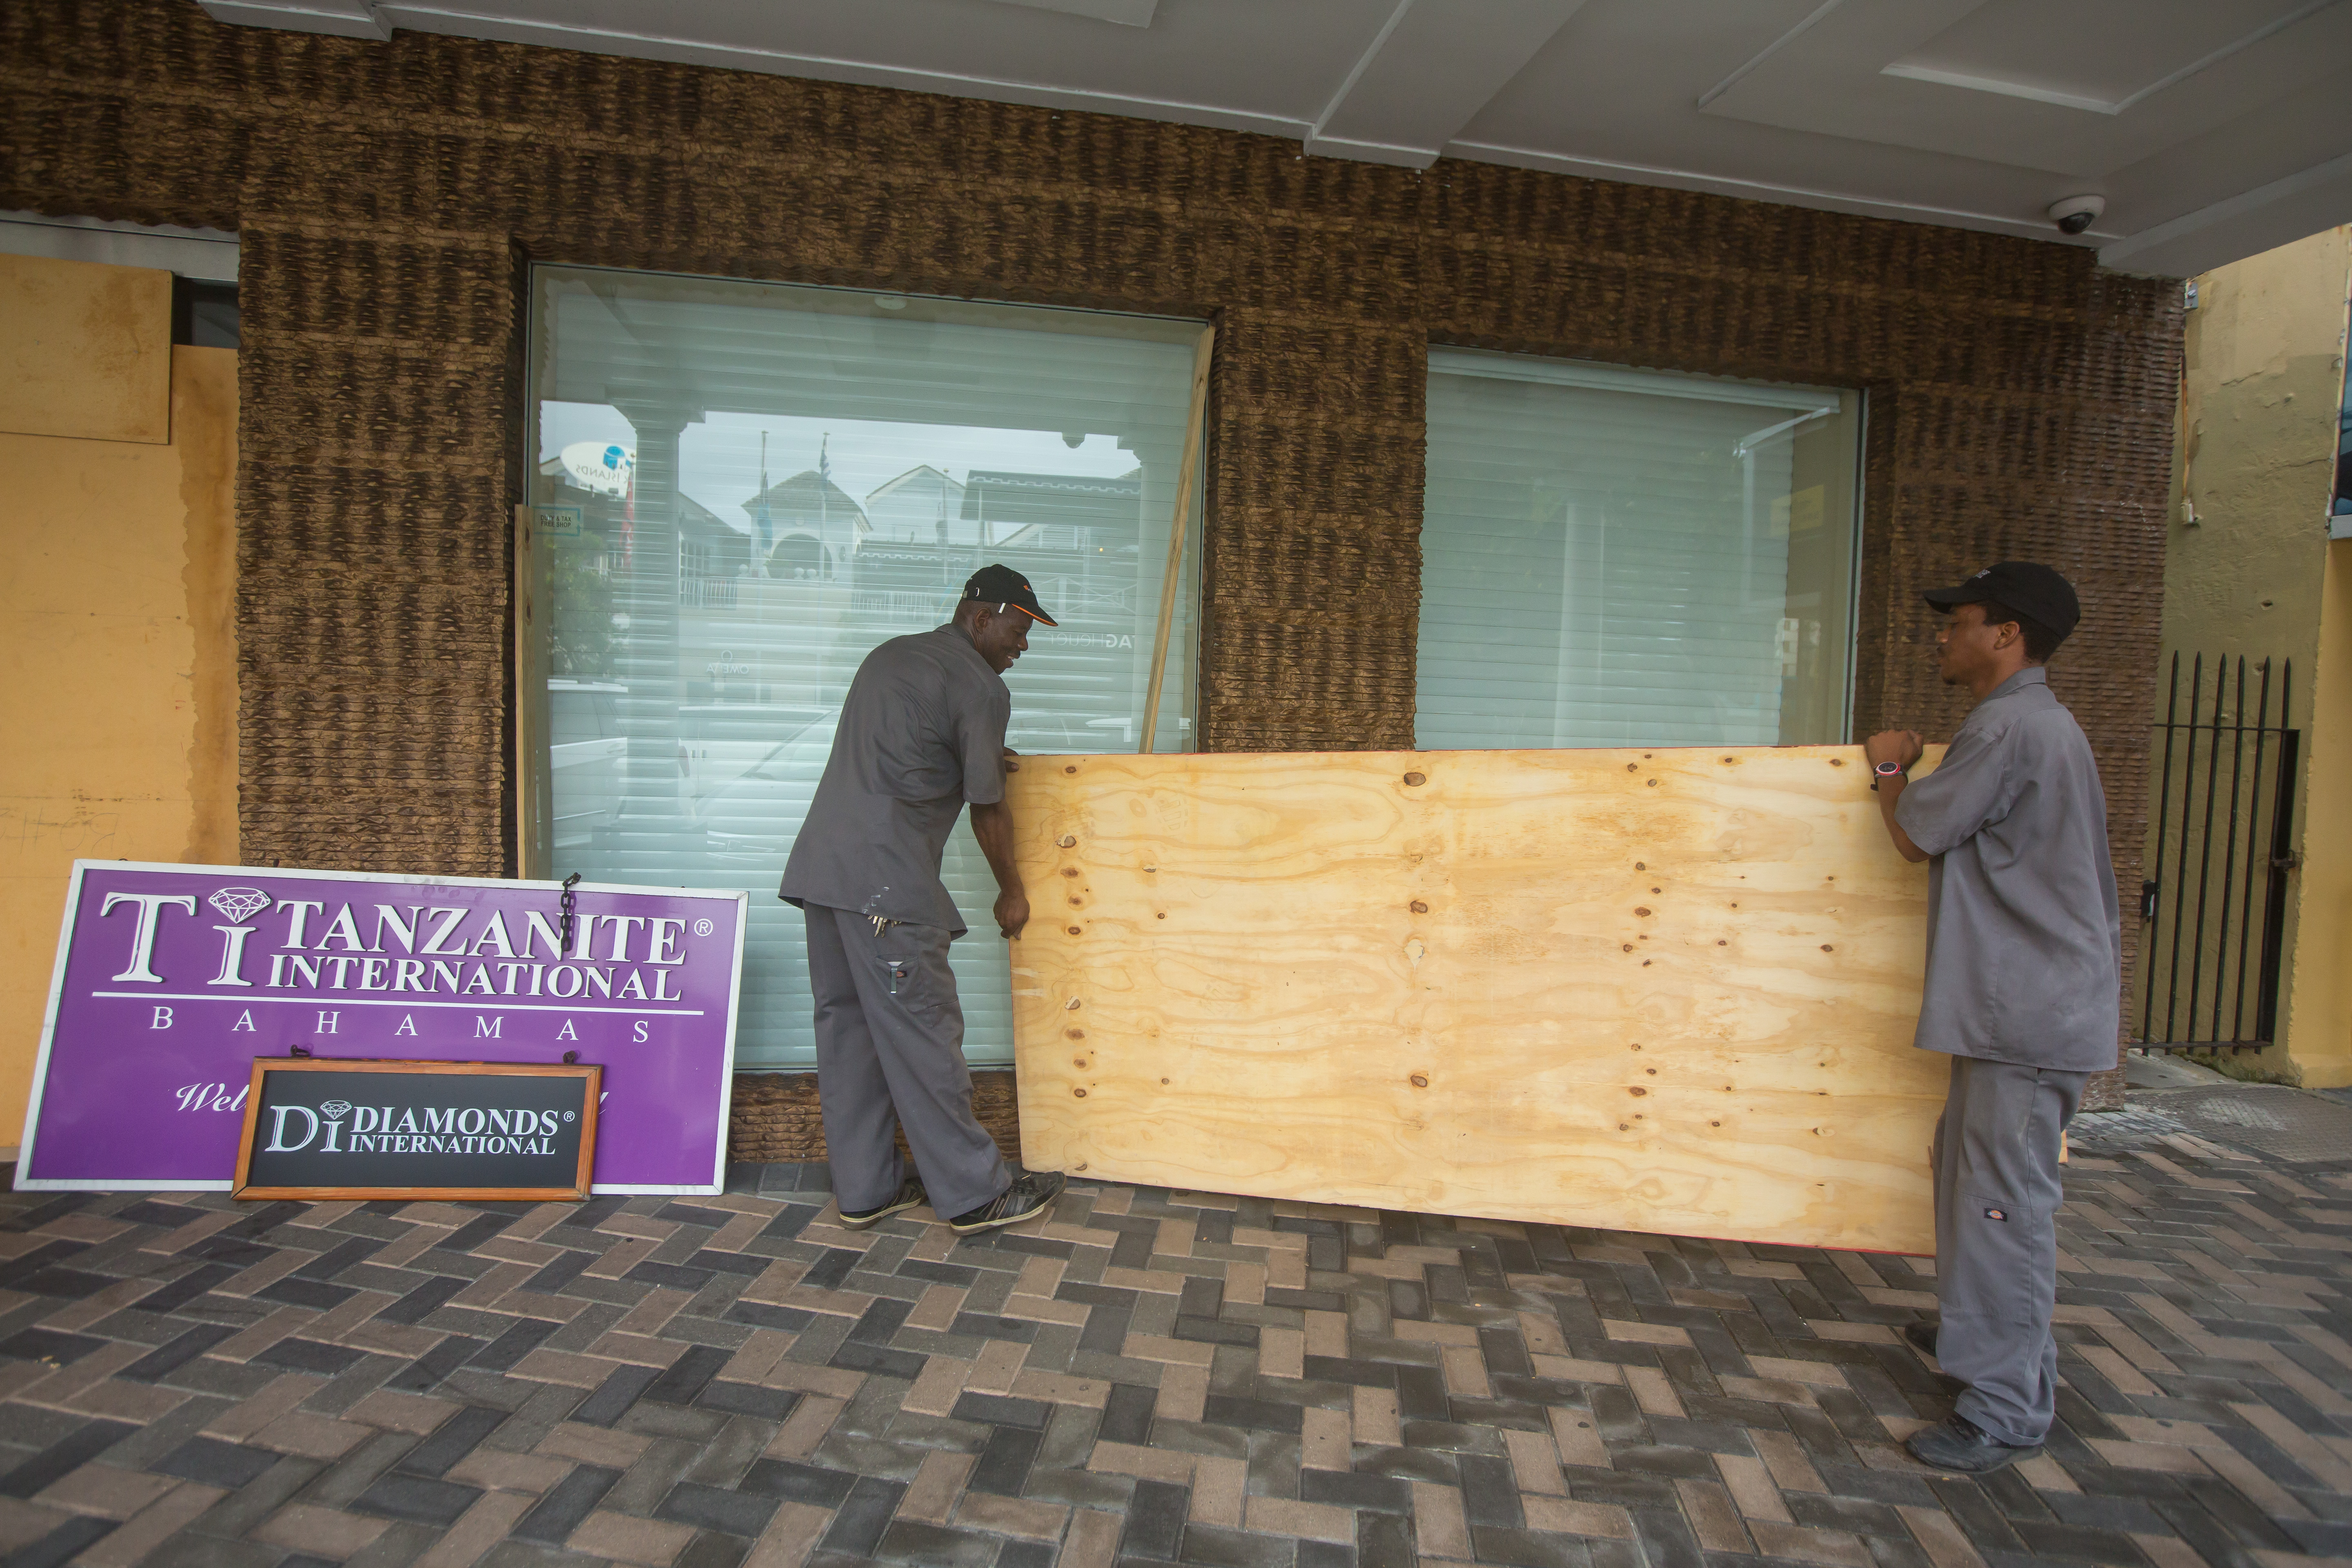 Perry Williams, 47, left, and Alaric Nixon, 28, carry a sheet of plywood as they cover the windows of the Diamond's International store, in preparation for the arrival of hurricane Joaquin in Nassau, Bahamas, Thursday, Oct. 1, 2015.